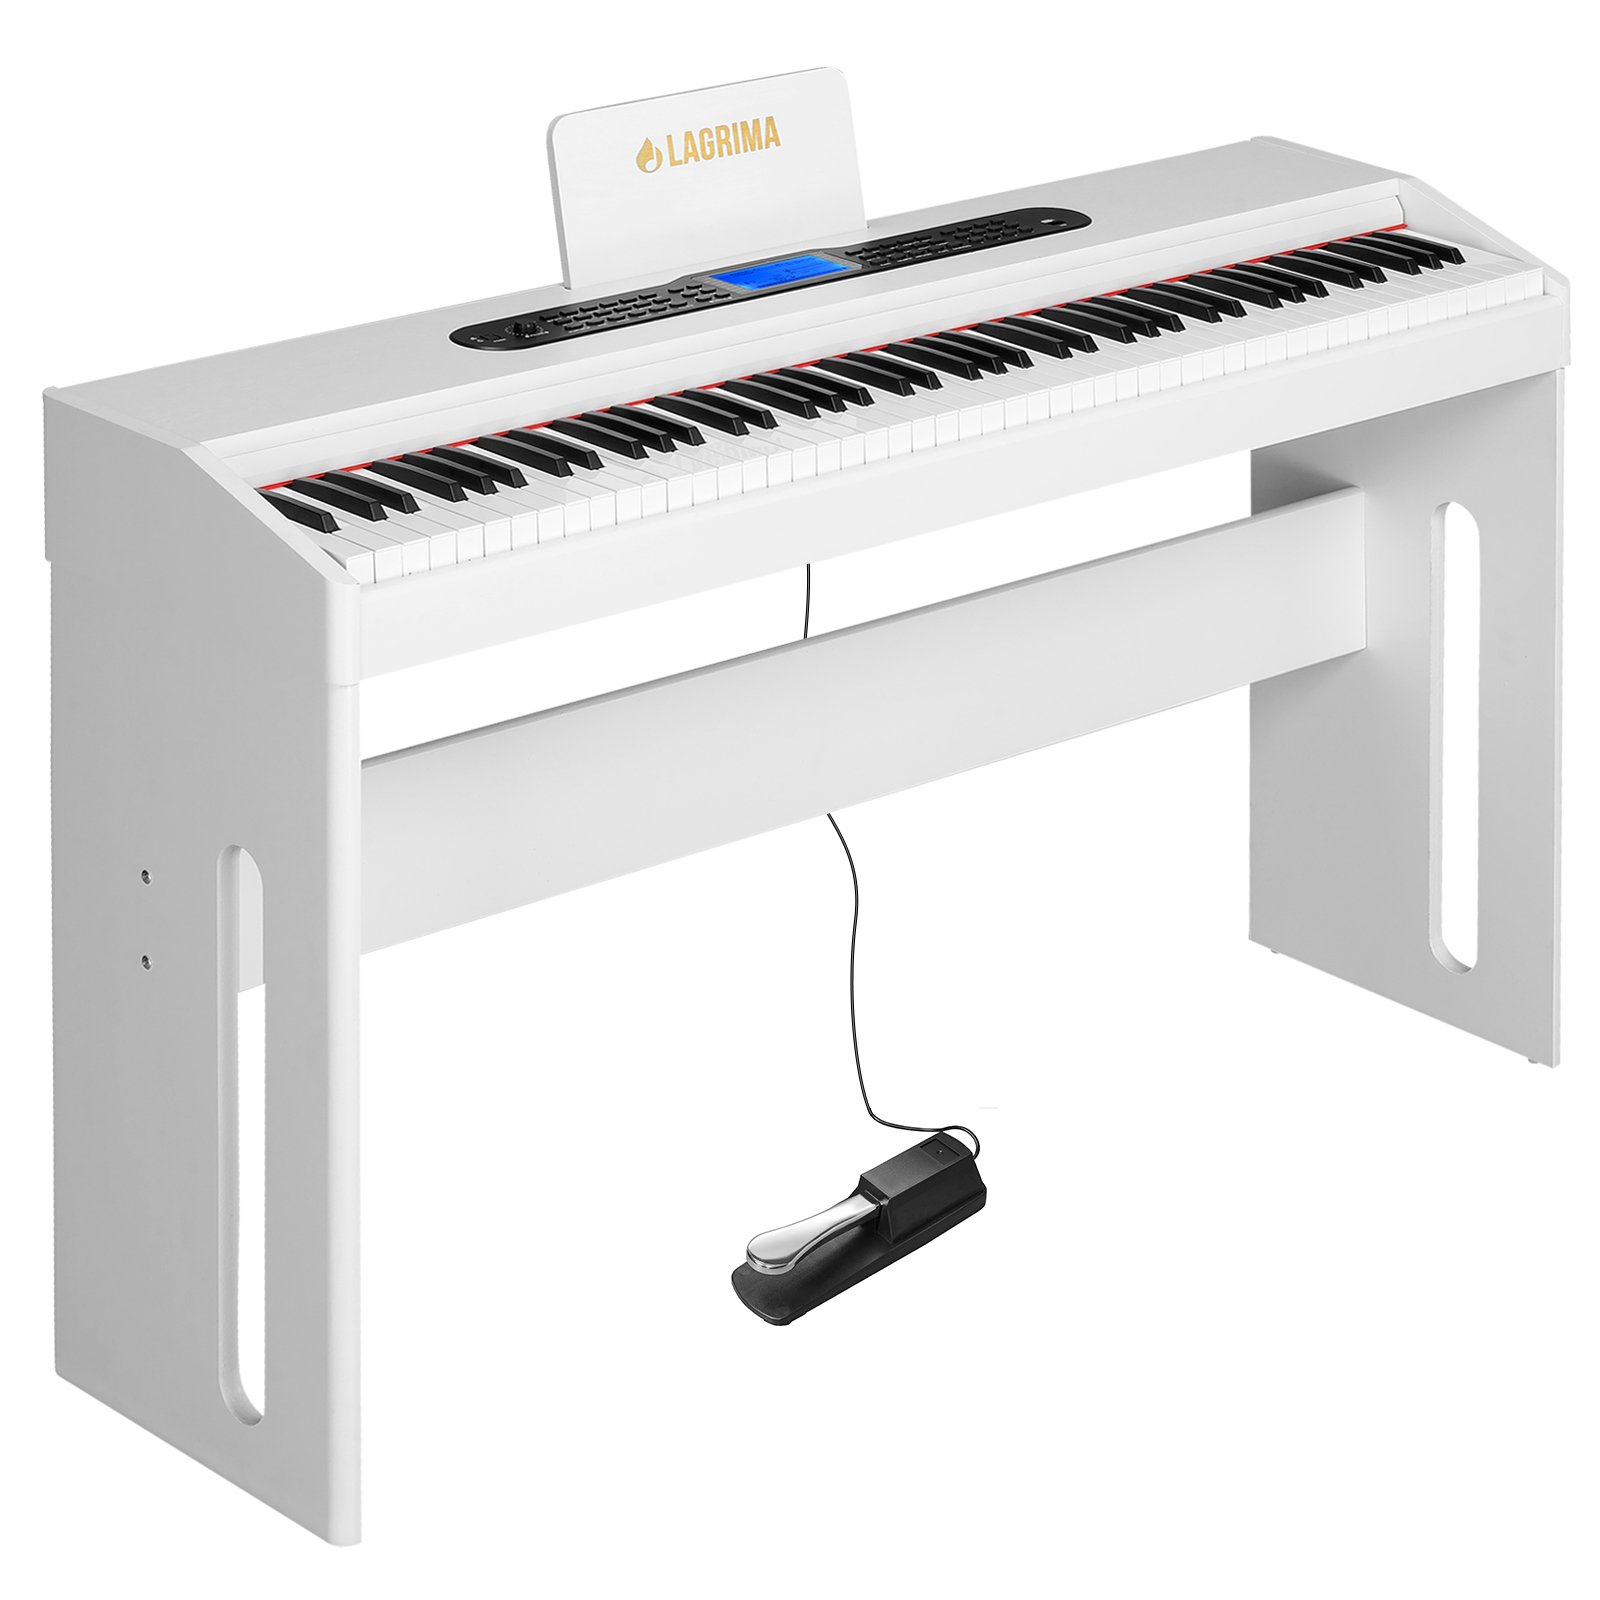 LAGRIMA White Digital Piano, 88 Keys Electric Piano Keyboard for Beginner/Adults W/Music Stand+Dust Cover+Power Adapter+1-Pedal Board+Instruction Book+Headphone Jack by LAGRIMA (Image #1)